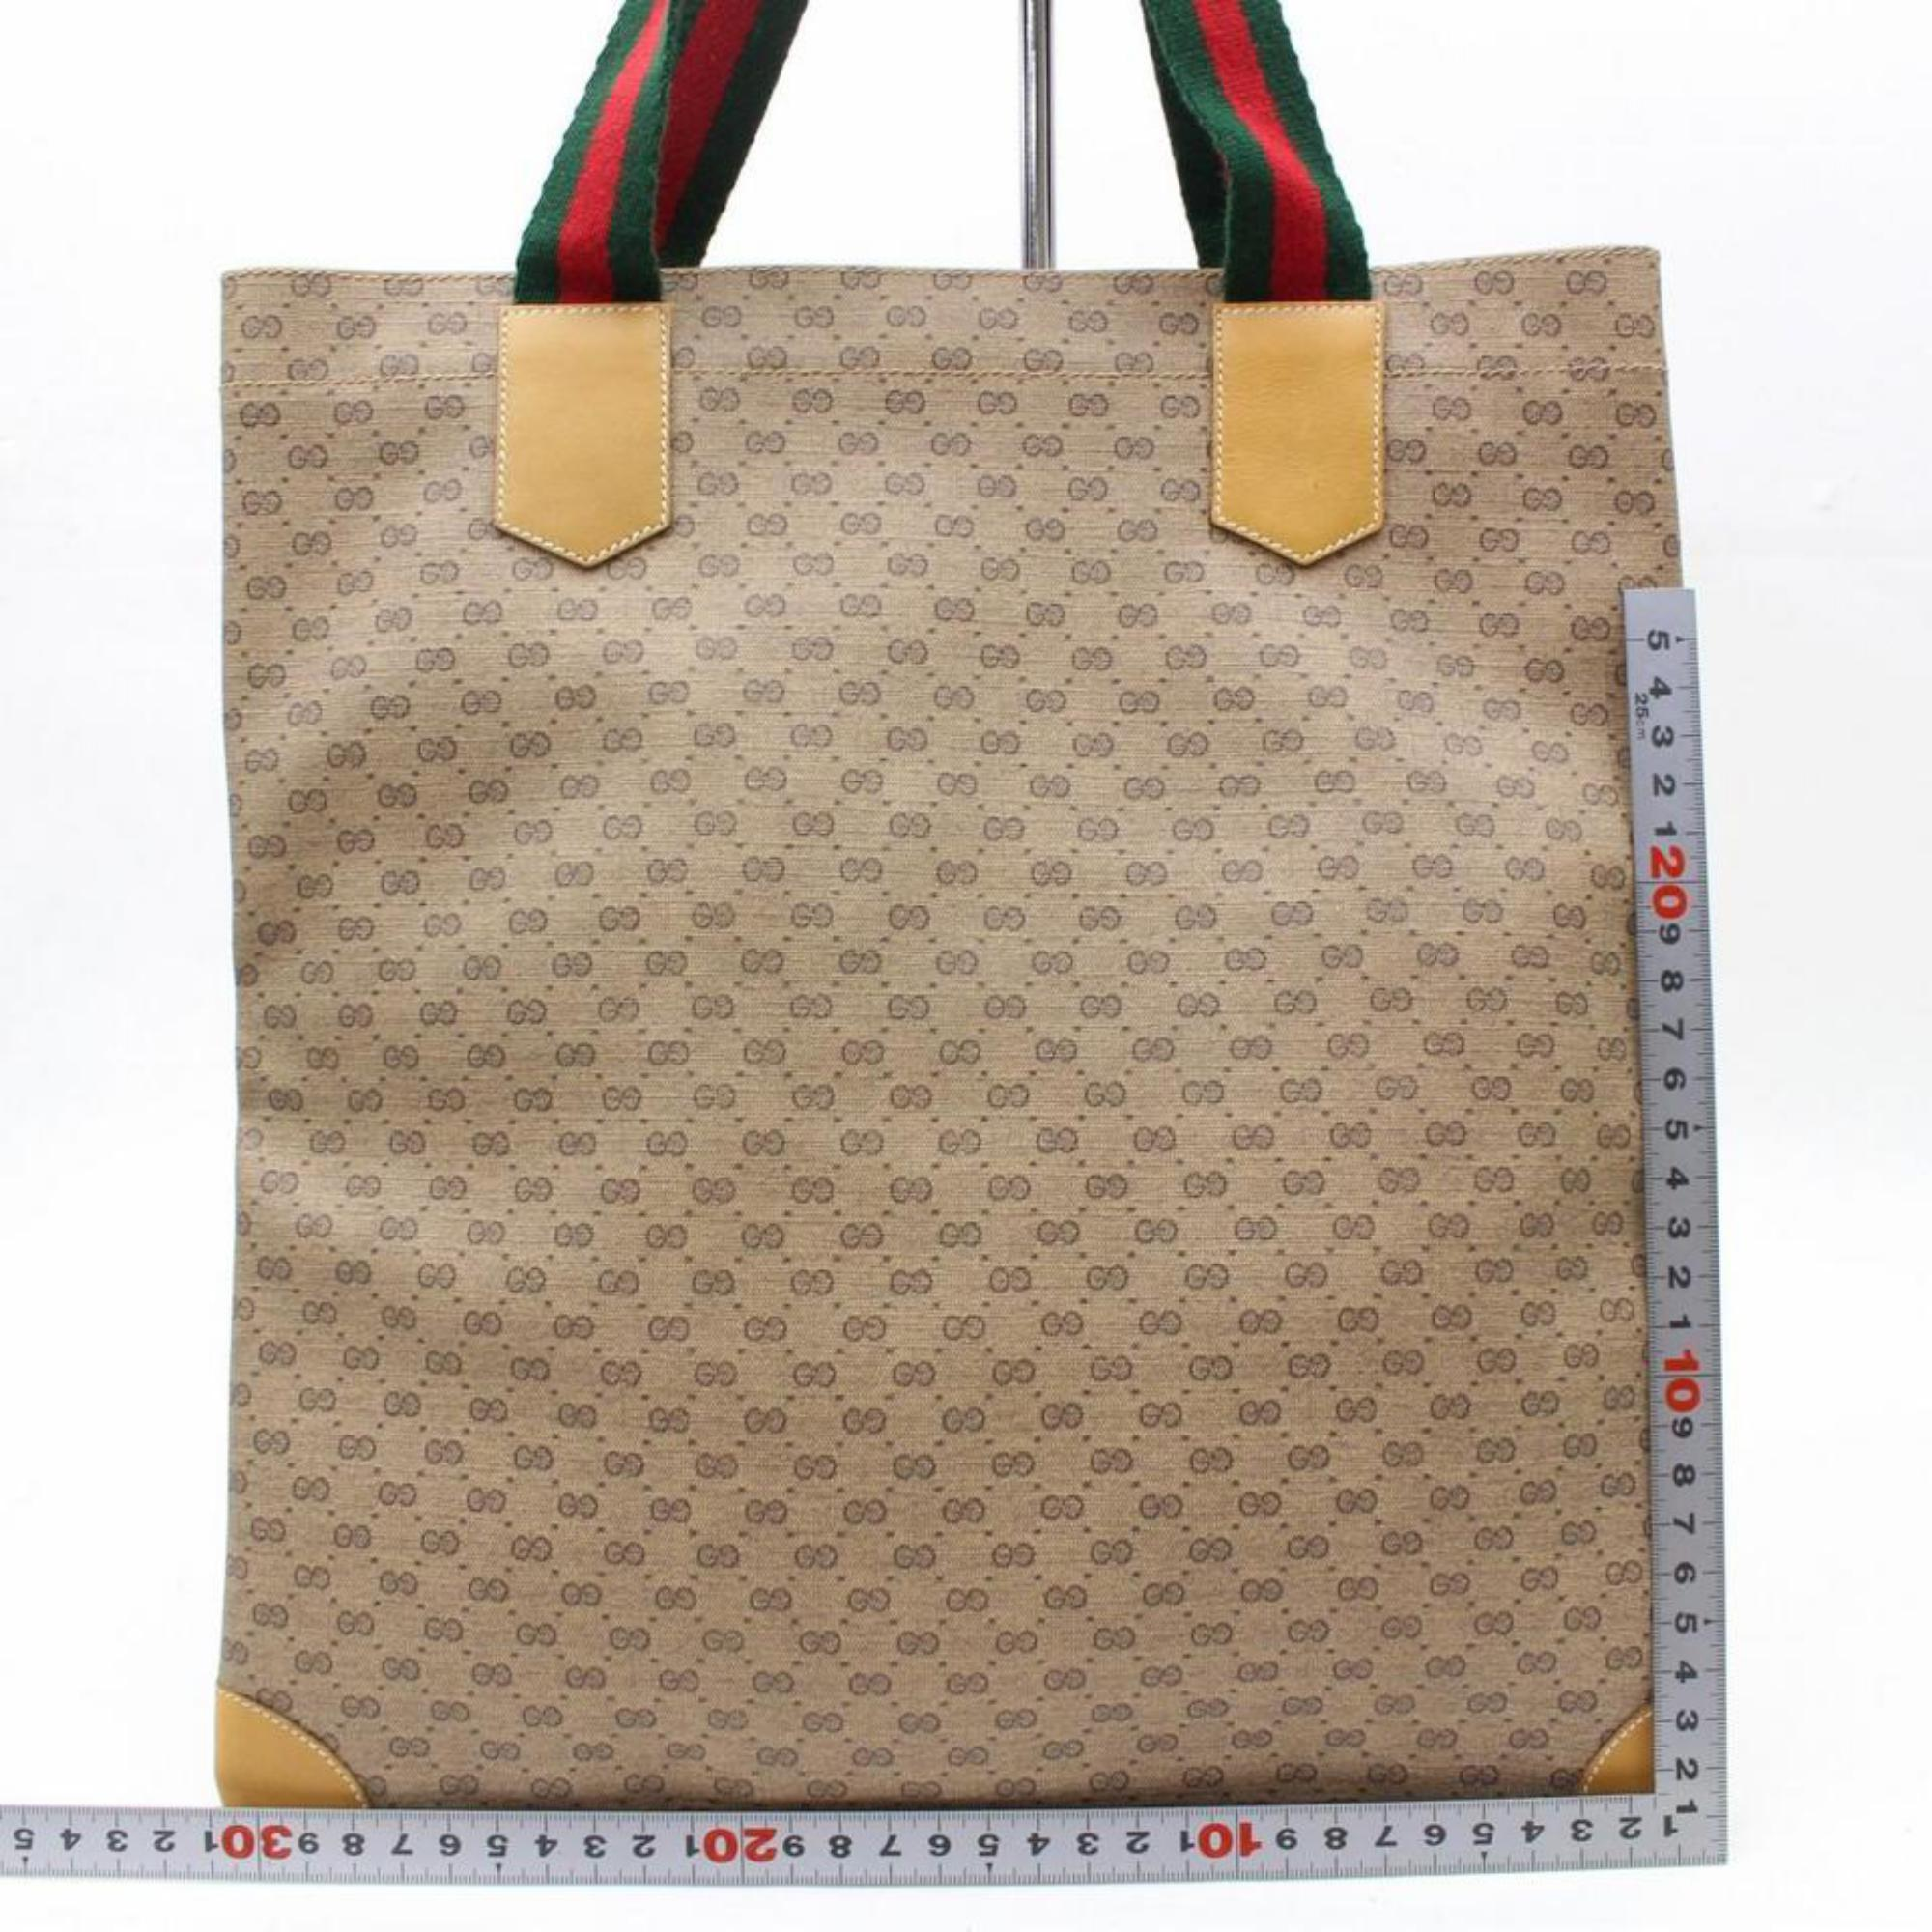 200356028234 Gucci Web Micro Monogram Logo Tote 867526 Beige Coated Canvas Shoulder Bag  For Sale at 1stdibs